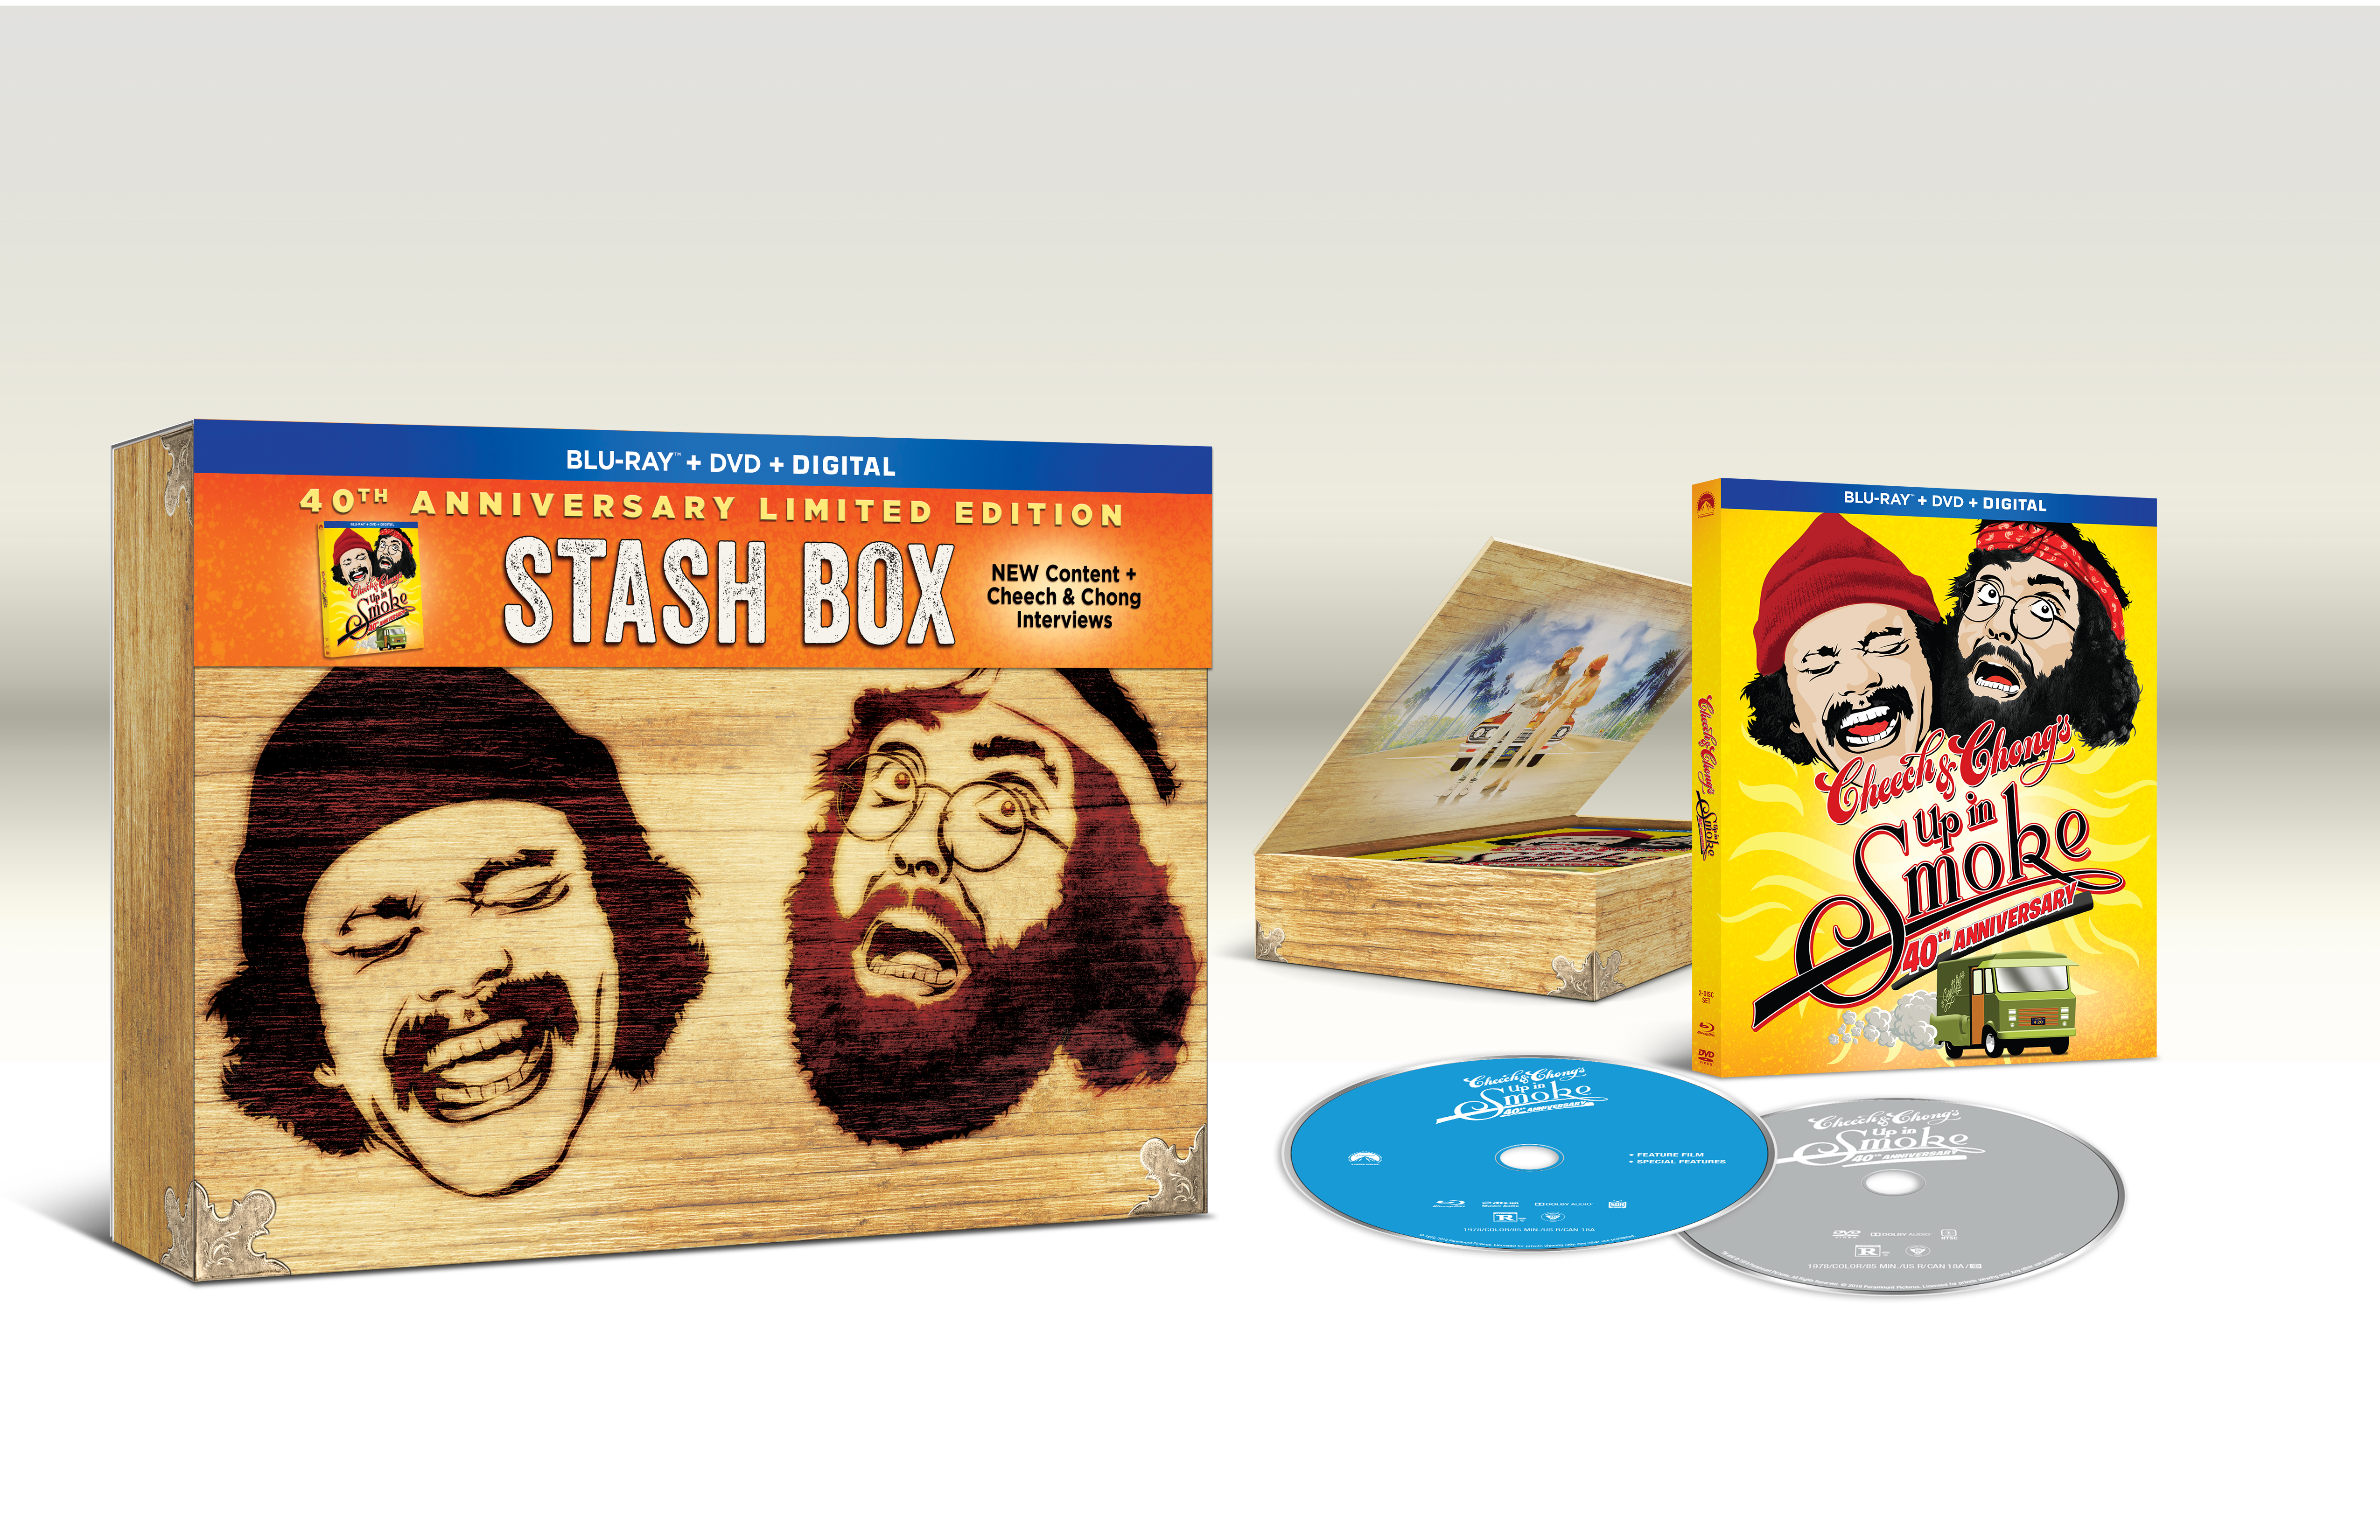 Cheech and Chong Up In Smoke 40th Anniversary Limited Edition Stash Box, Paramount Pictures - Cheech and Chong Stash Box